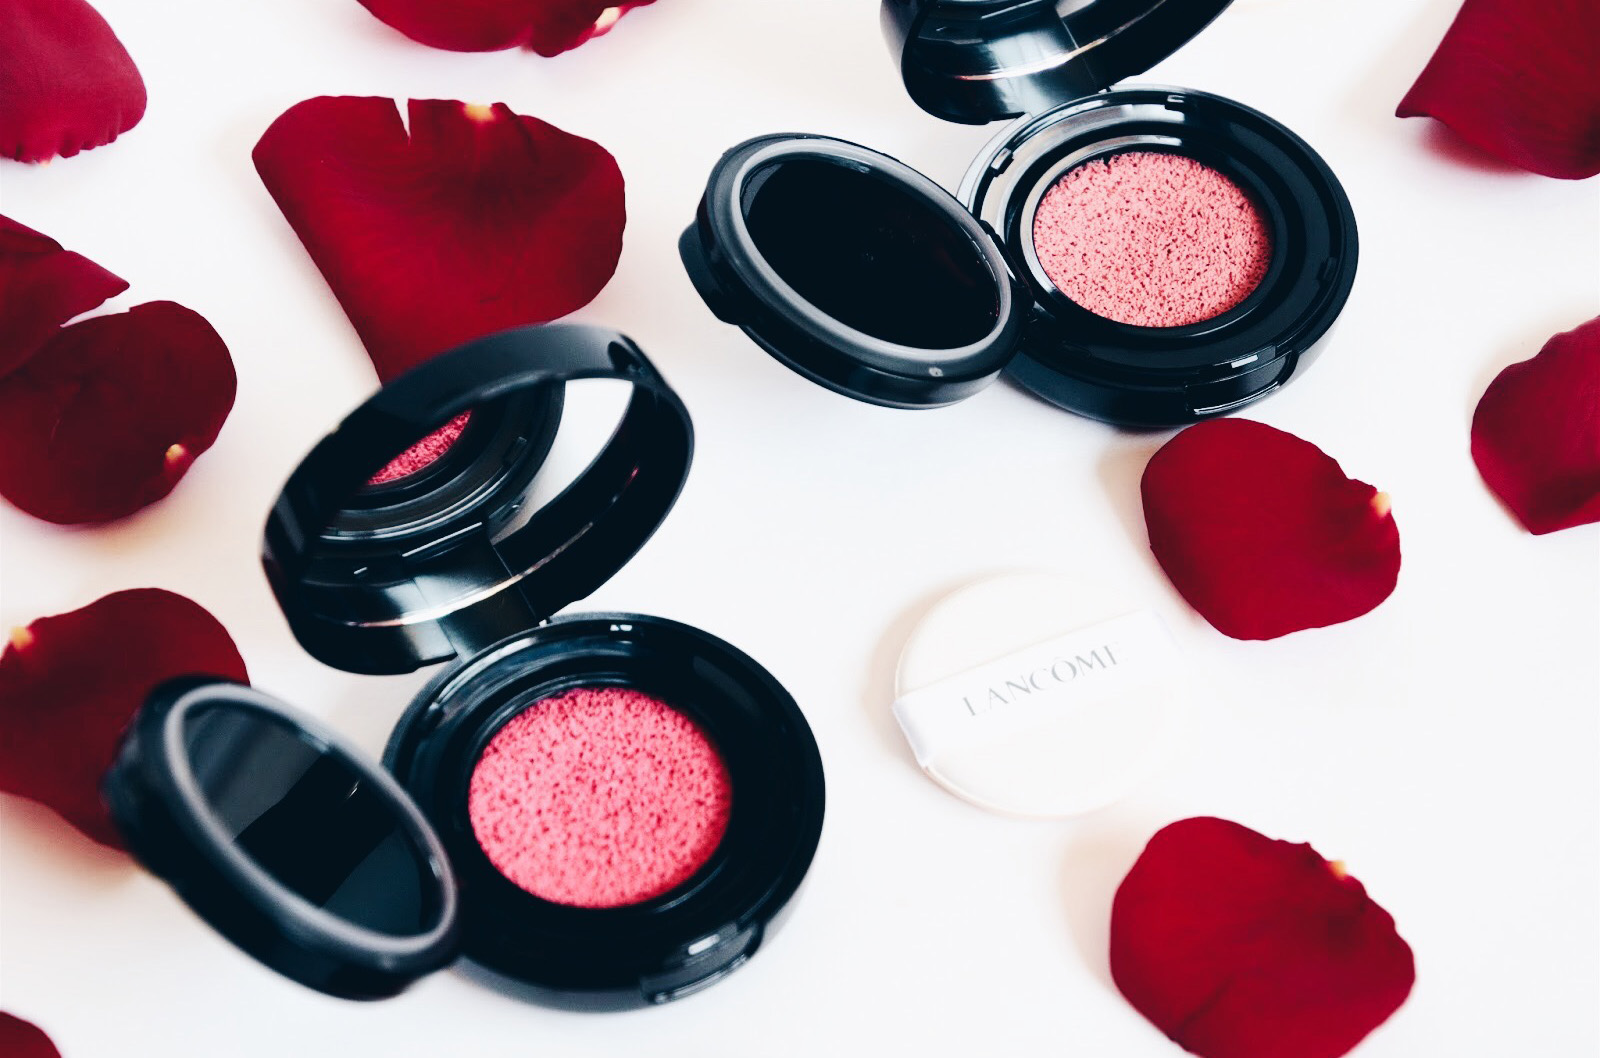 lancôme cushion blush subtil avis test swatch